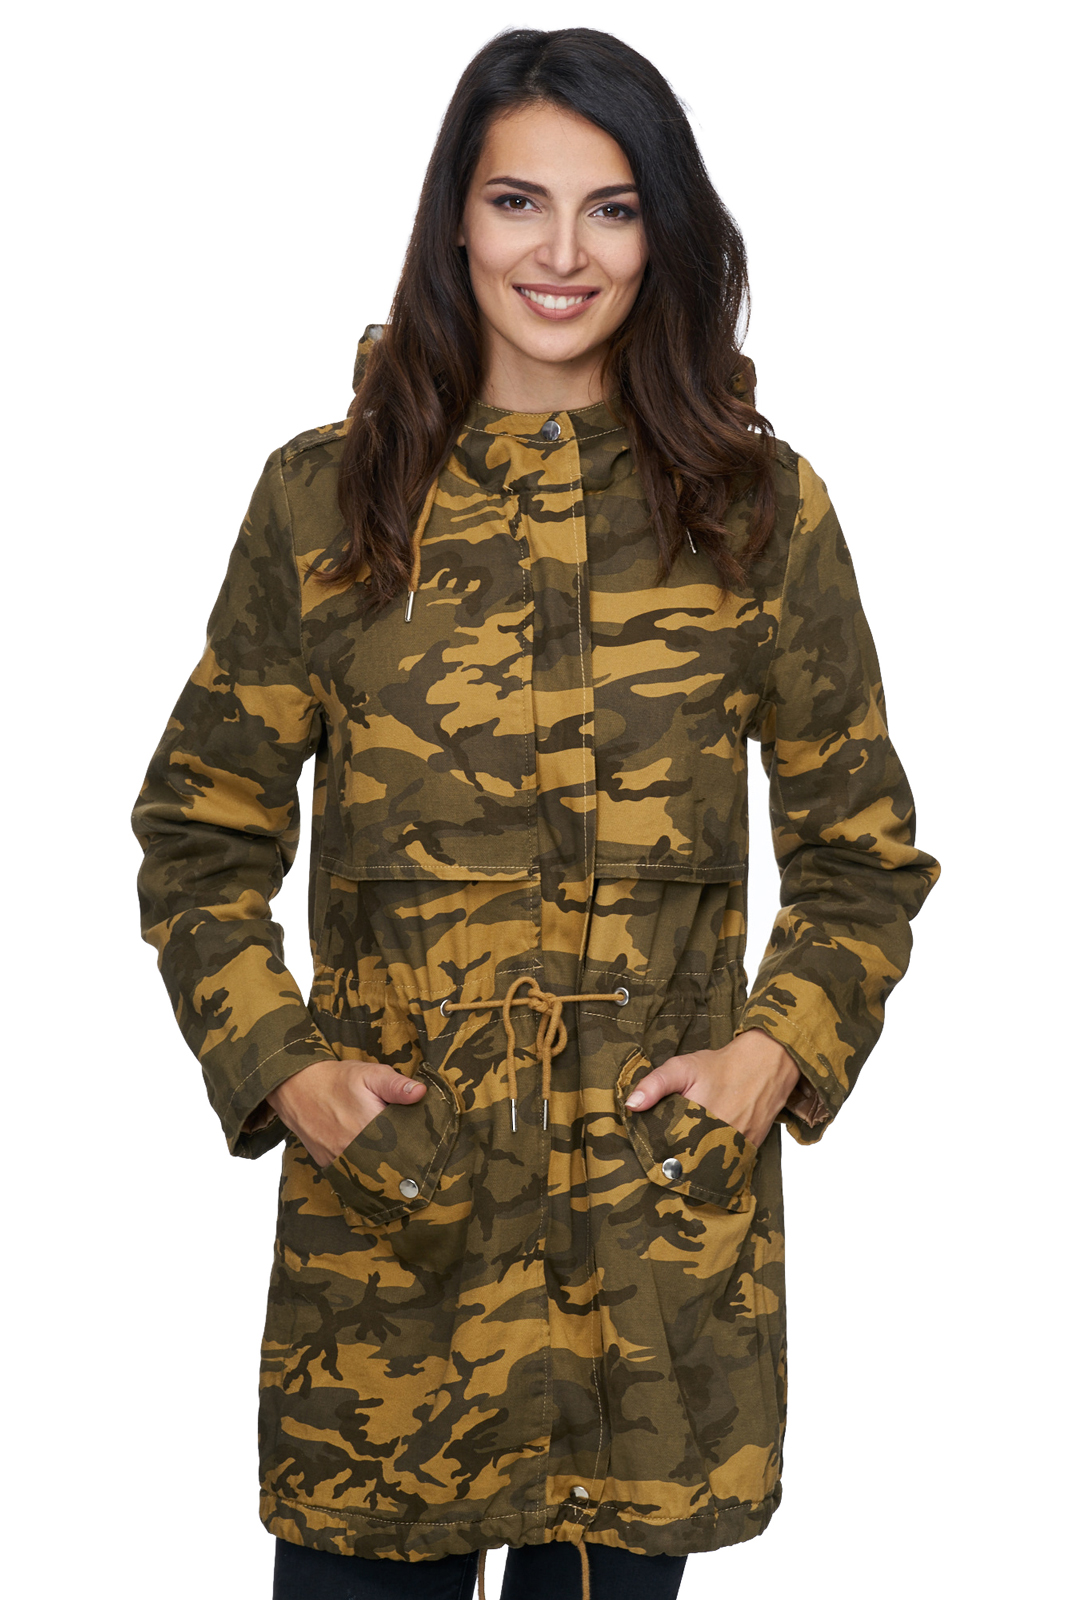 damen winter jacke camouflage mantel warm parka gr n gelb d 235 neu ebay. Black Bedroom Furniture Sets. Home Design Ideas